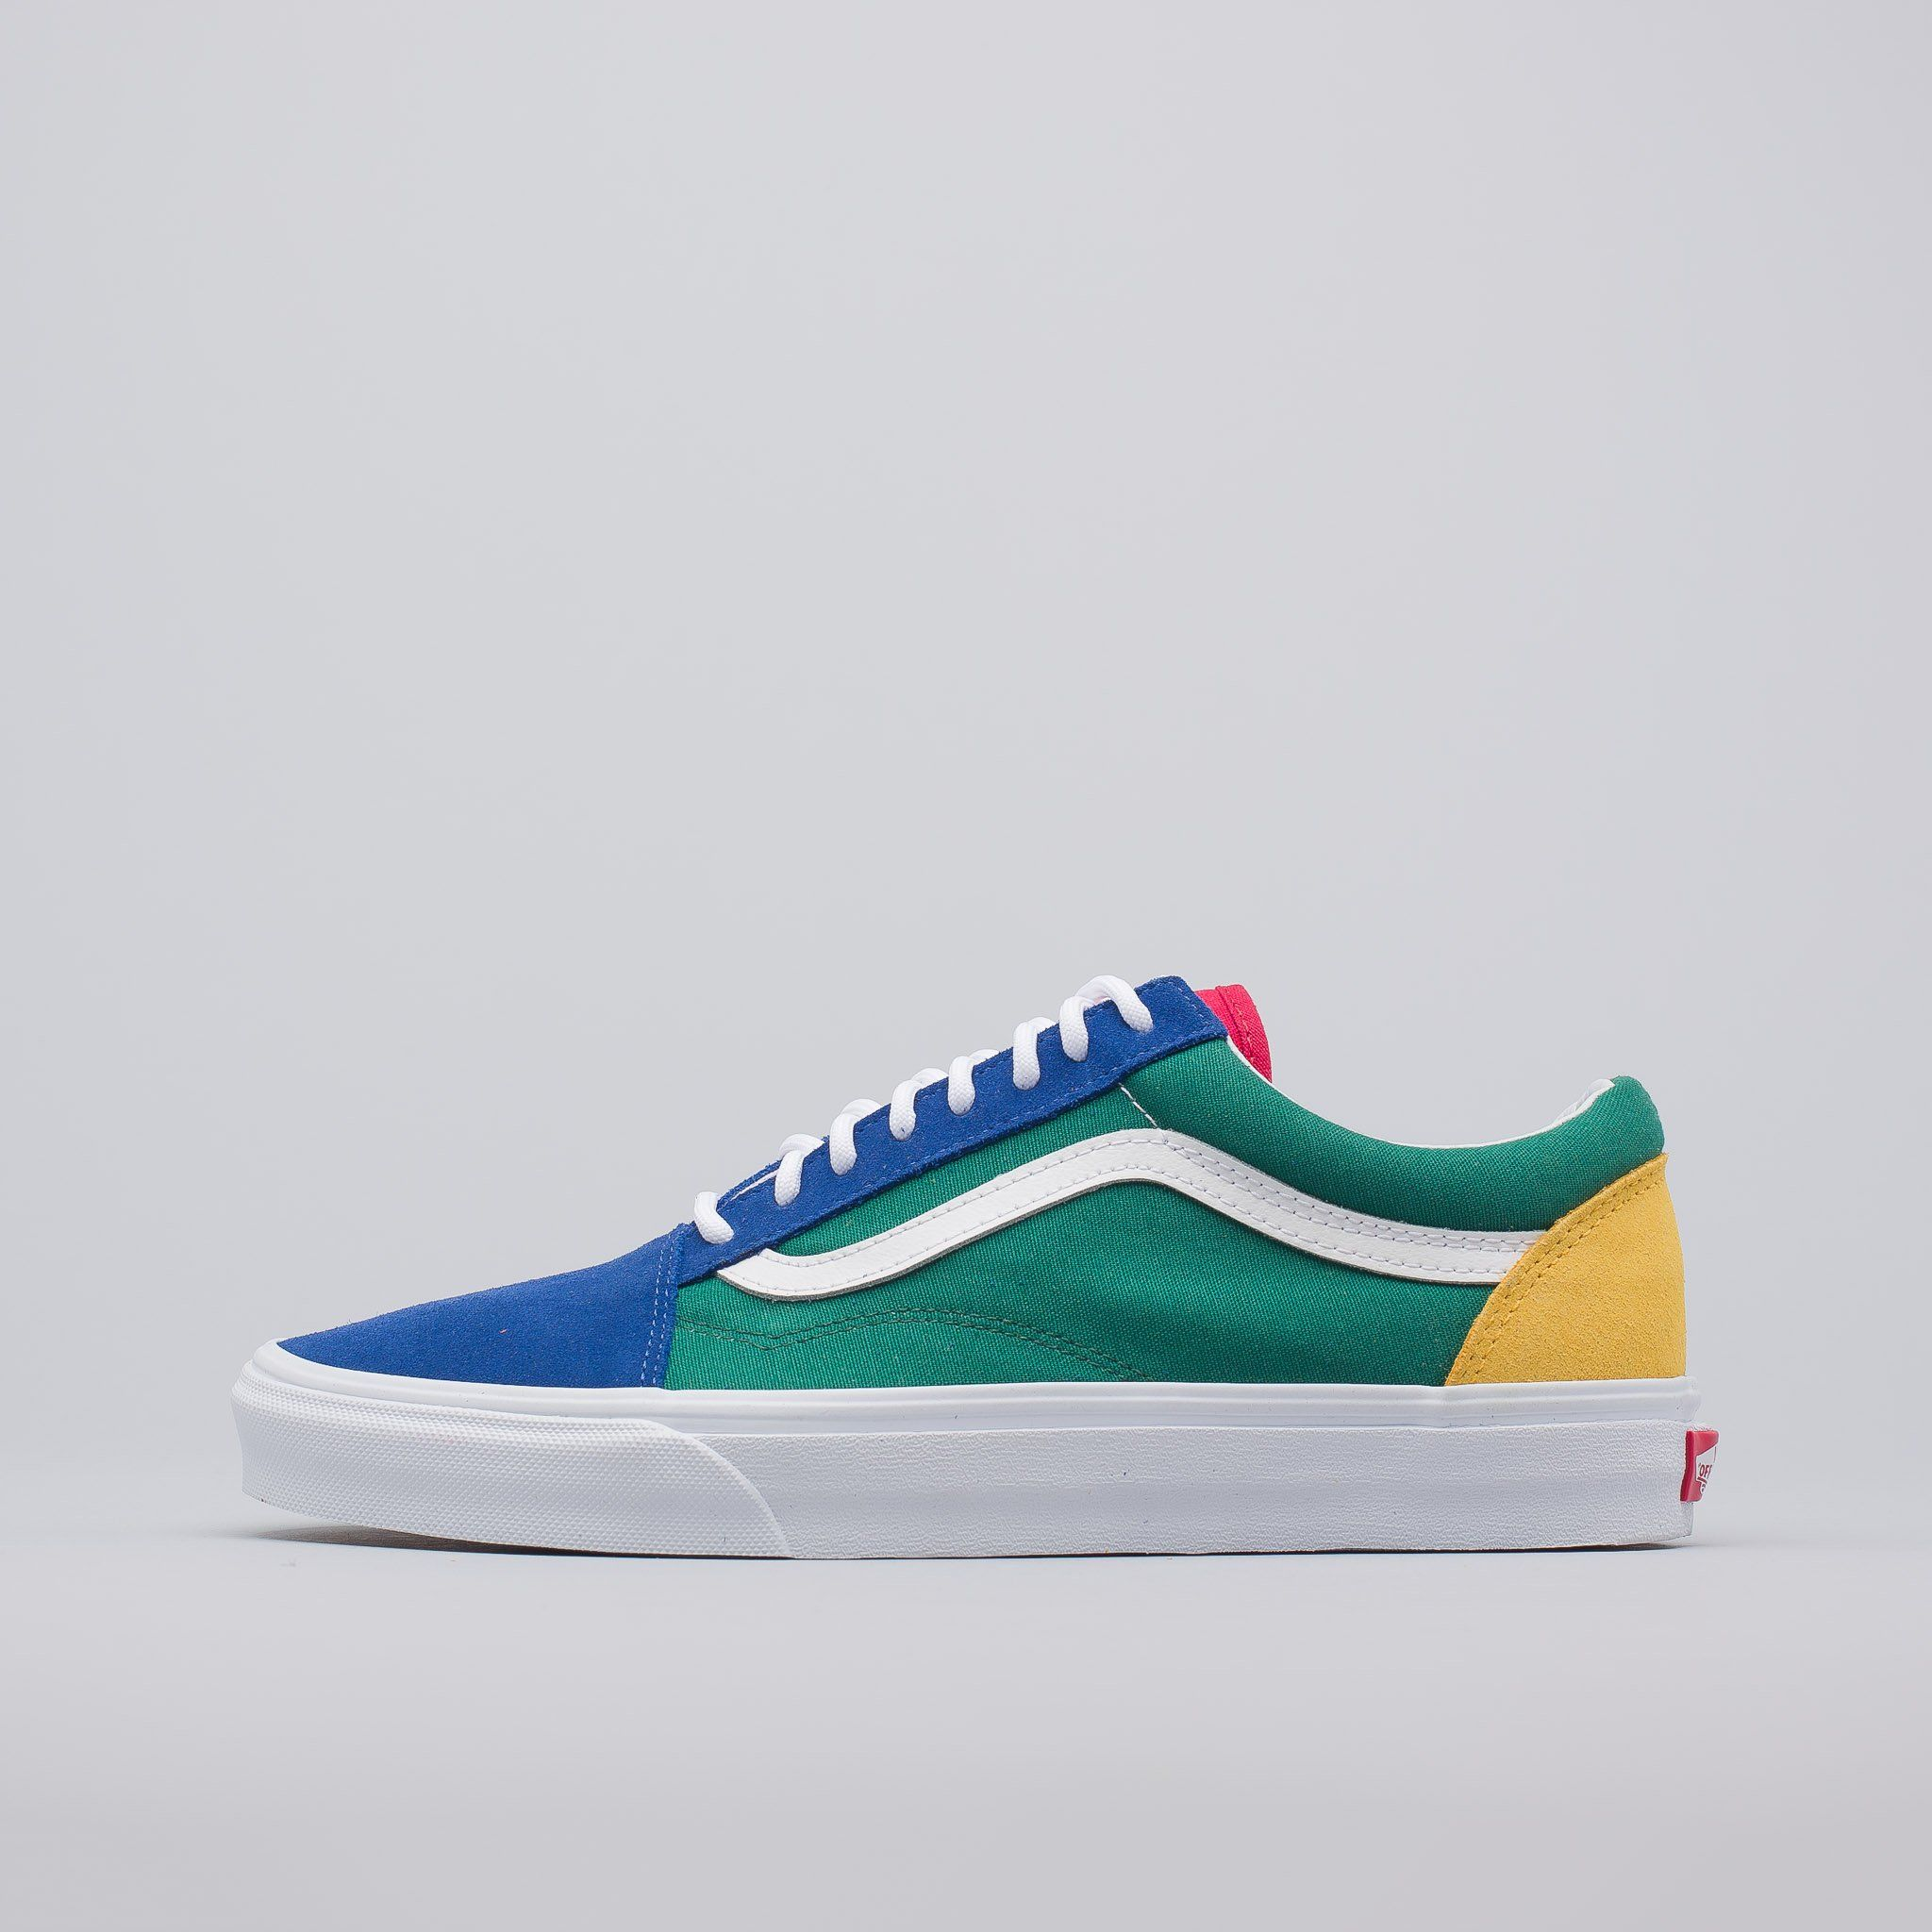 Vans Yacht Club: Vans Yacht Club Old Skool In Blue/Green/Yellow